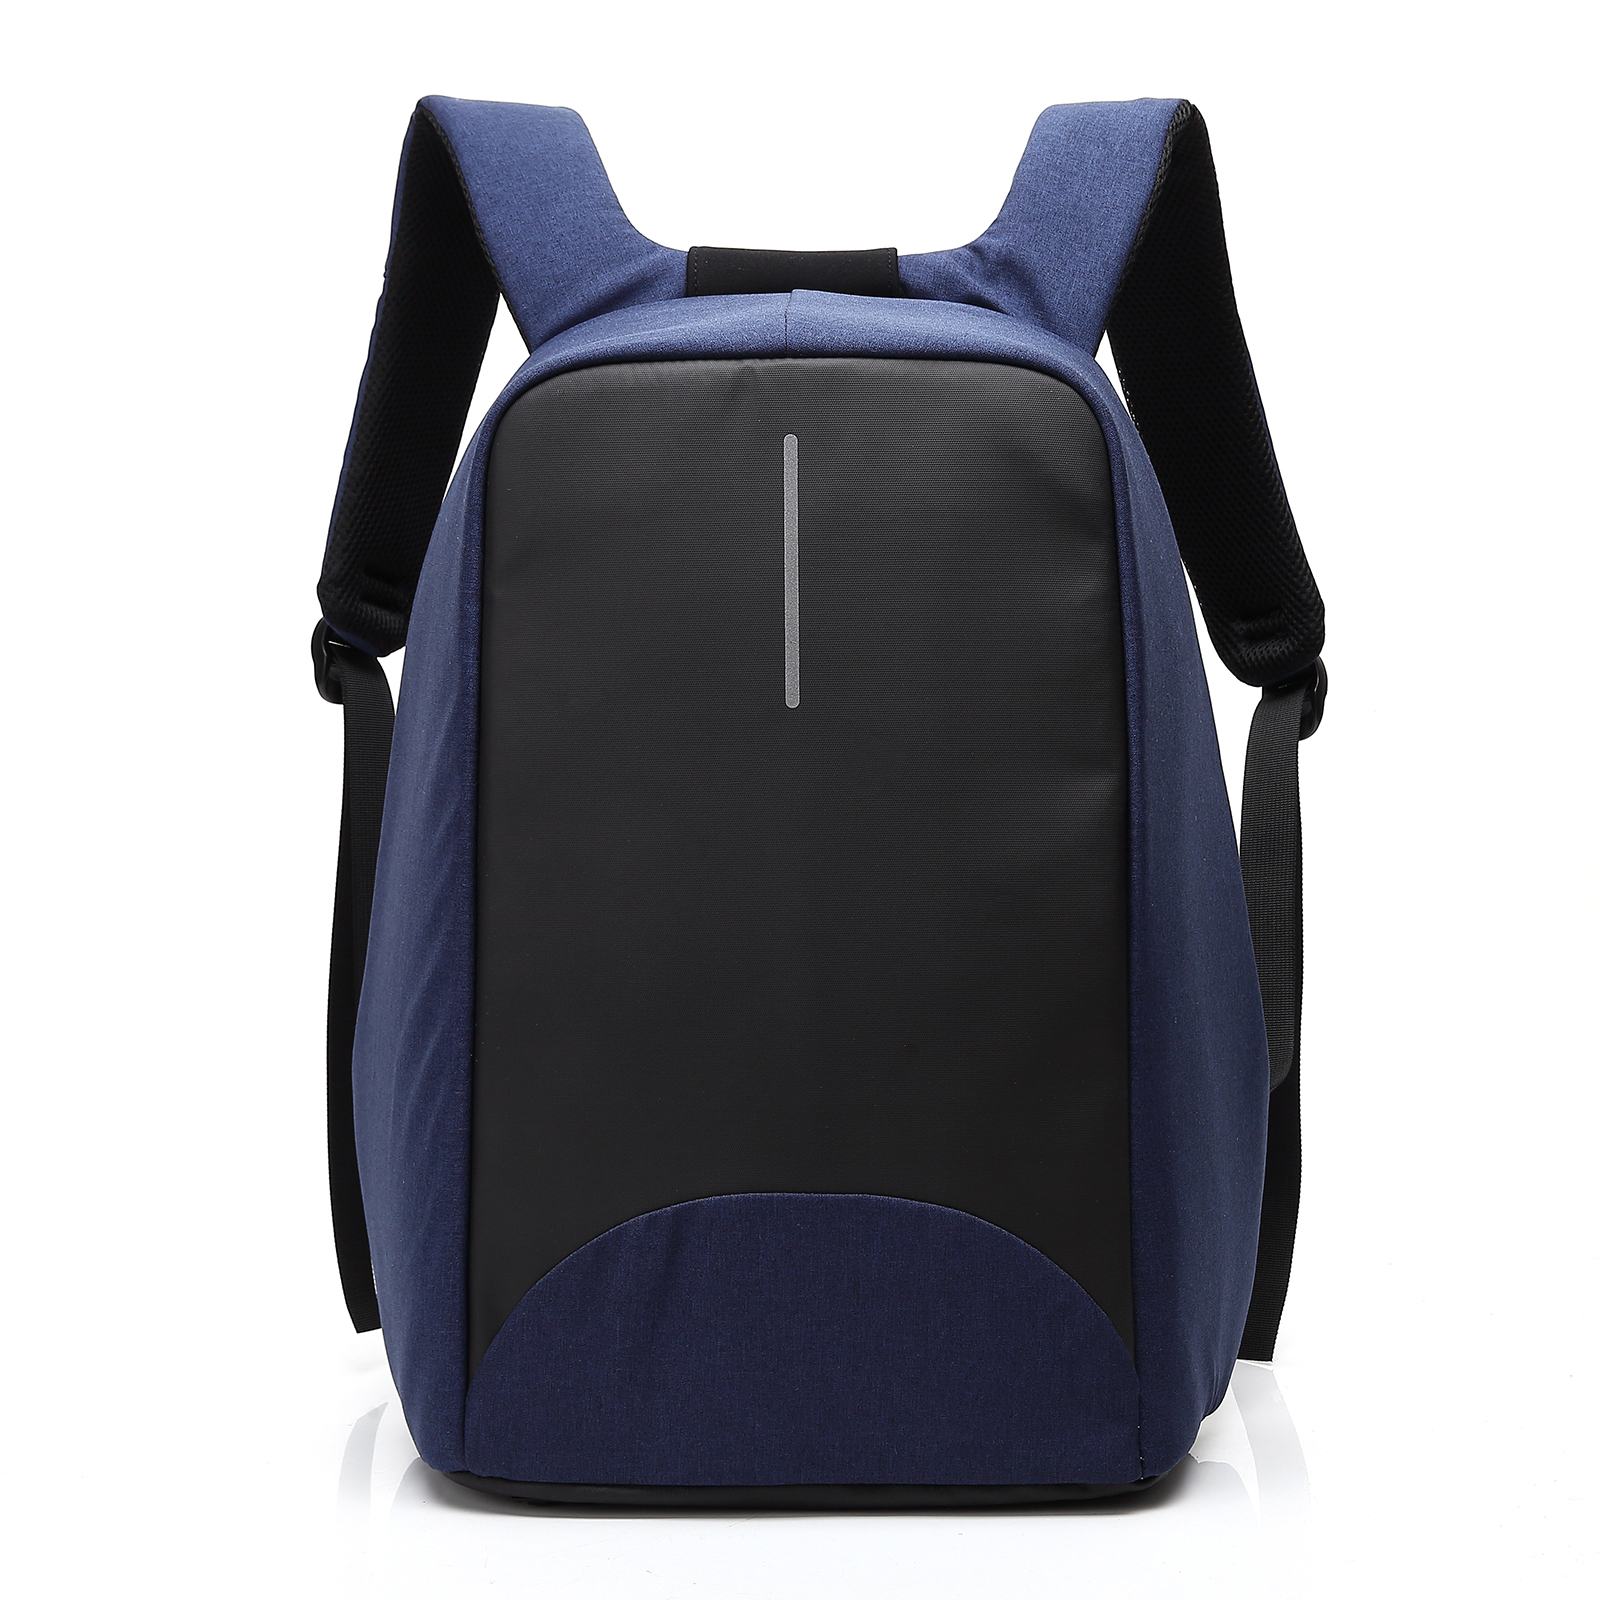 15 Inch USB Charge Laptop Backpack Anti Theft Men Travel Security Waterproof School Bags College Teenage Male Backpack Schoolbag augur 2018 brand men backpack waterproof 15inch laptop back teenage college dayback larger capacity travel bag pack for male